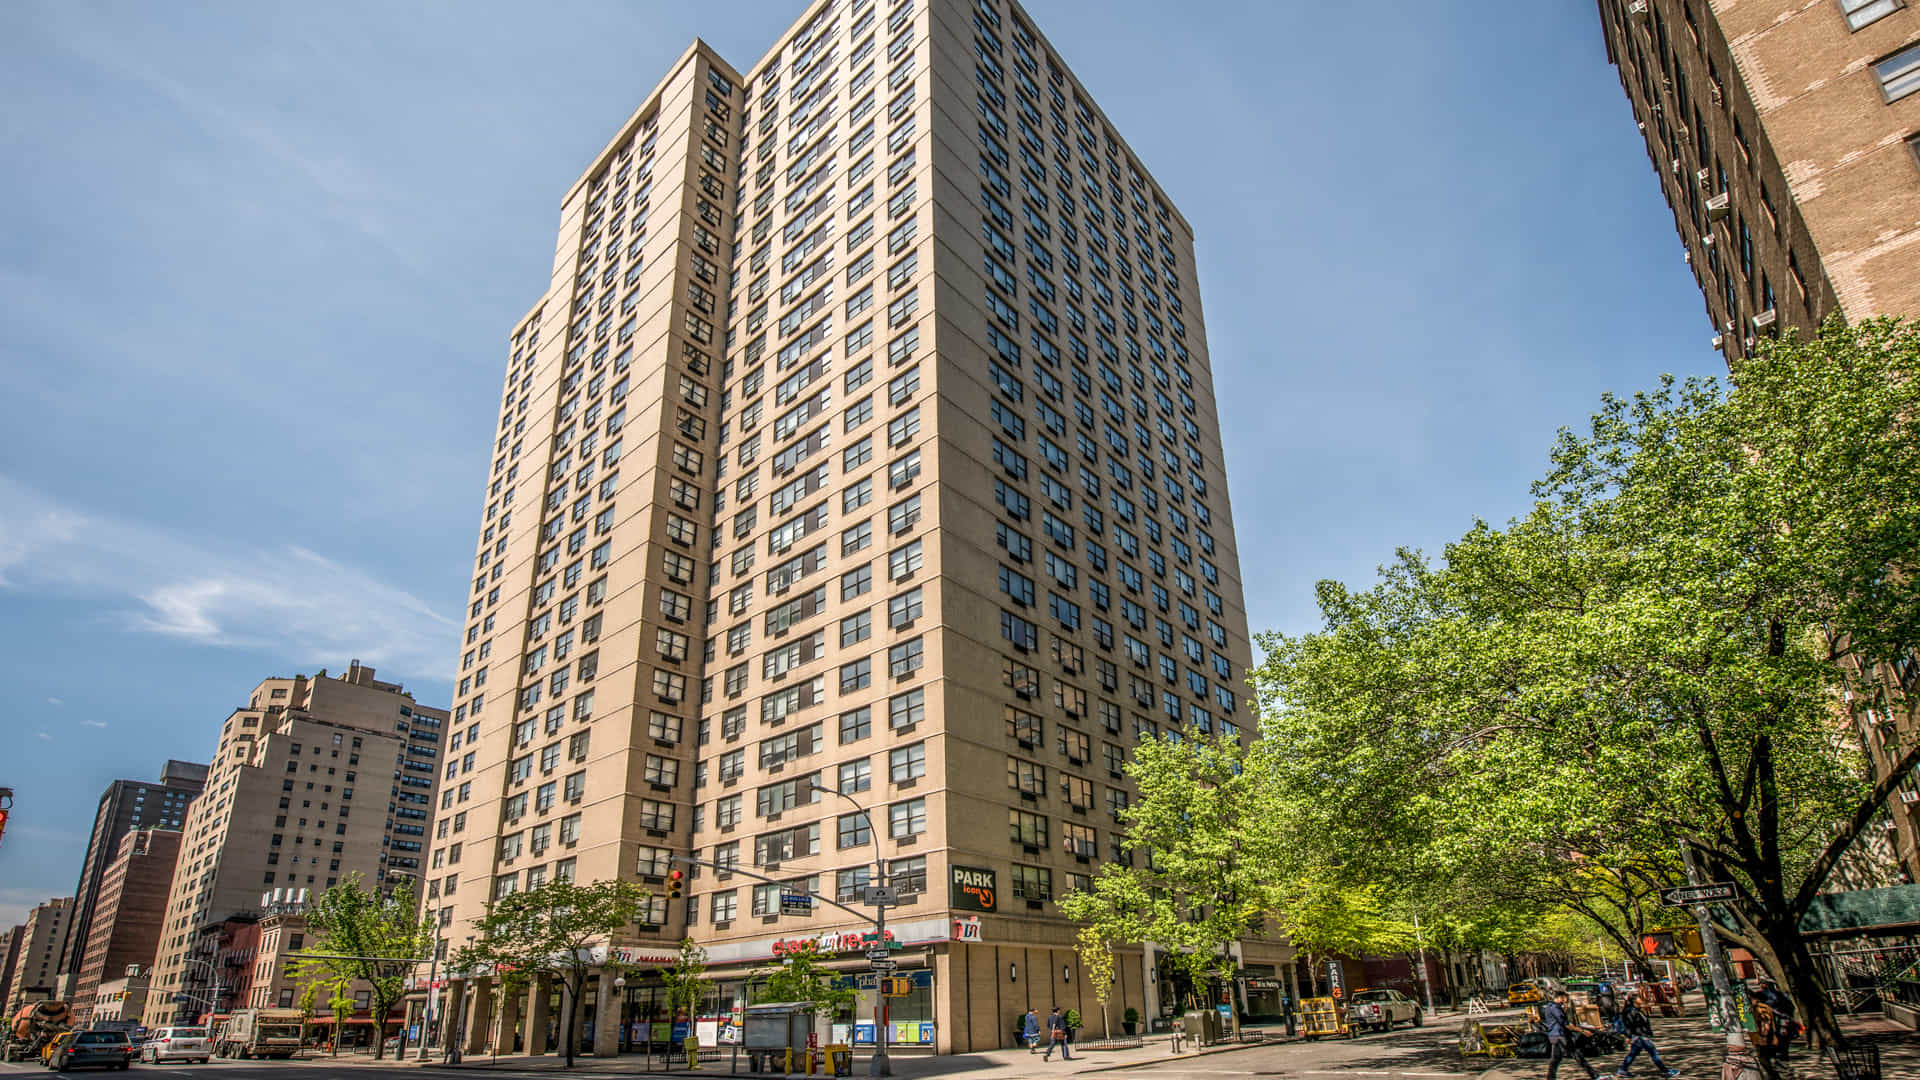 Parc east apartments exterior